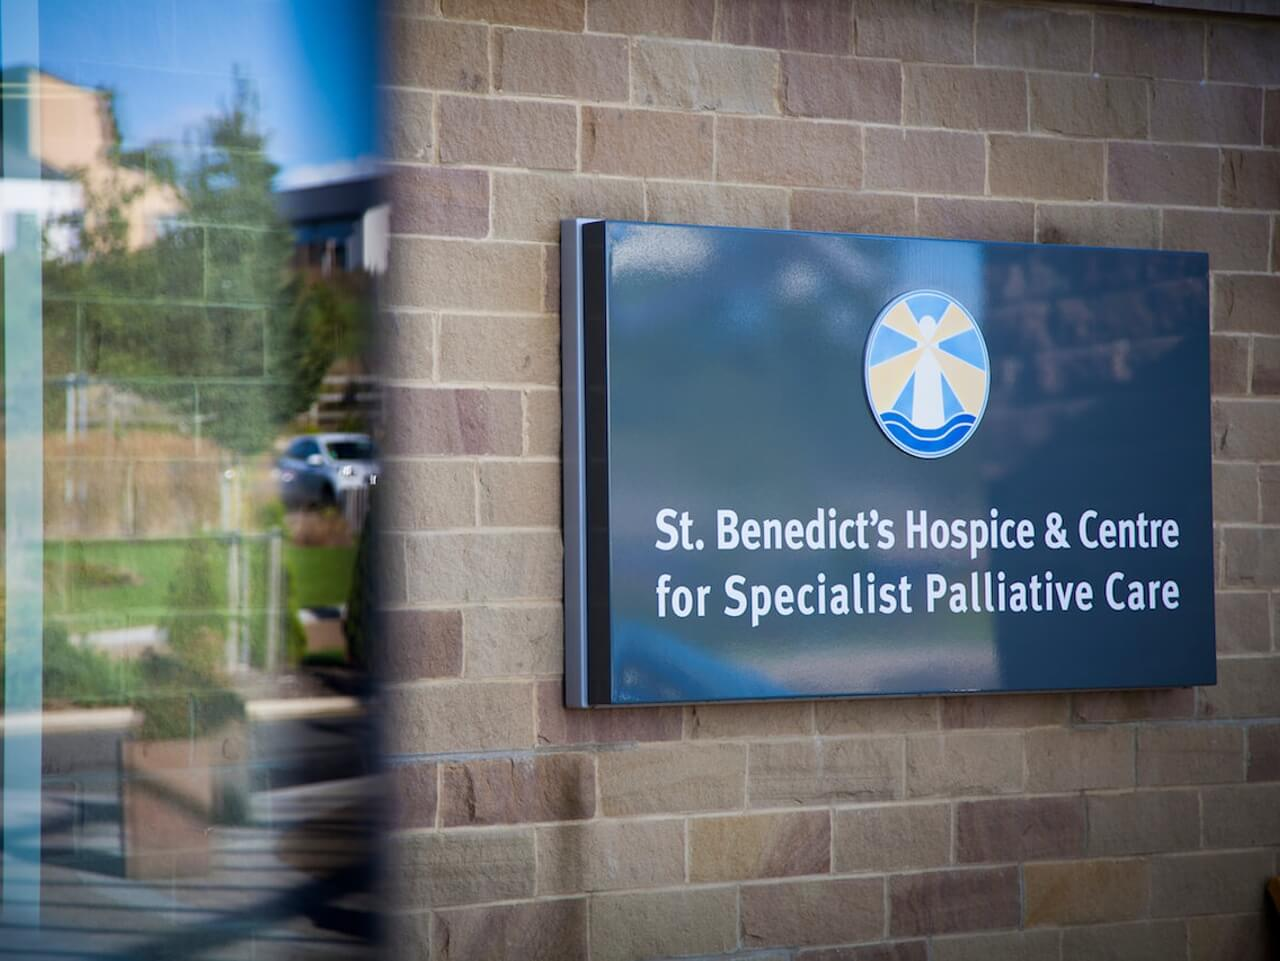 External signage at St Benedict's Hospice